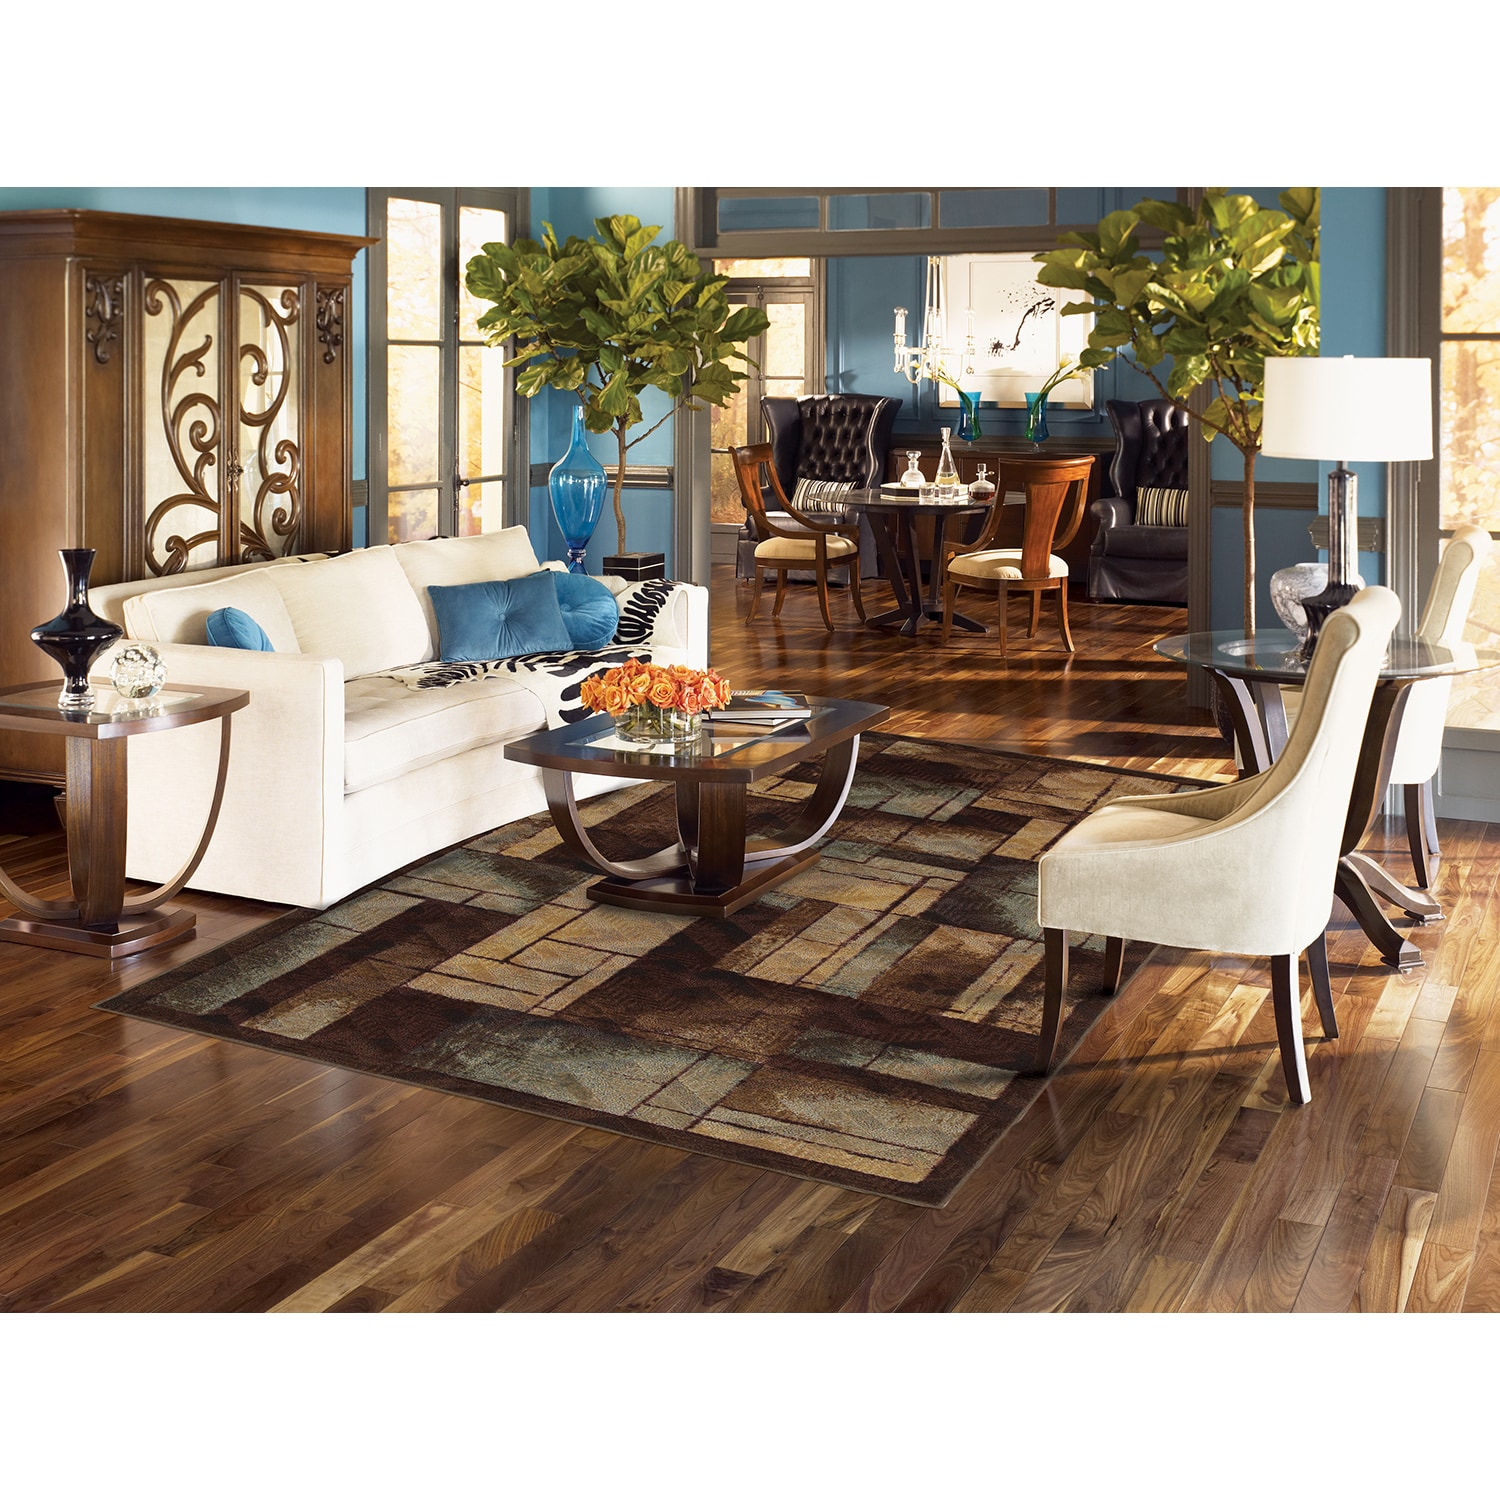 MOHAWK Home New Wave Roby Area Rug (7'6 x 11') (Roby Blue...